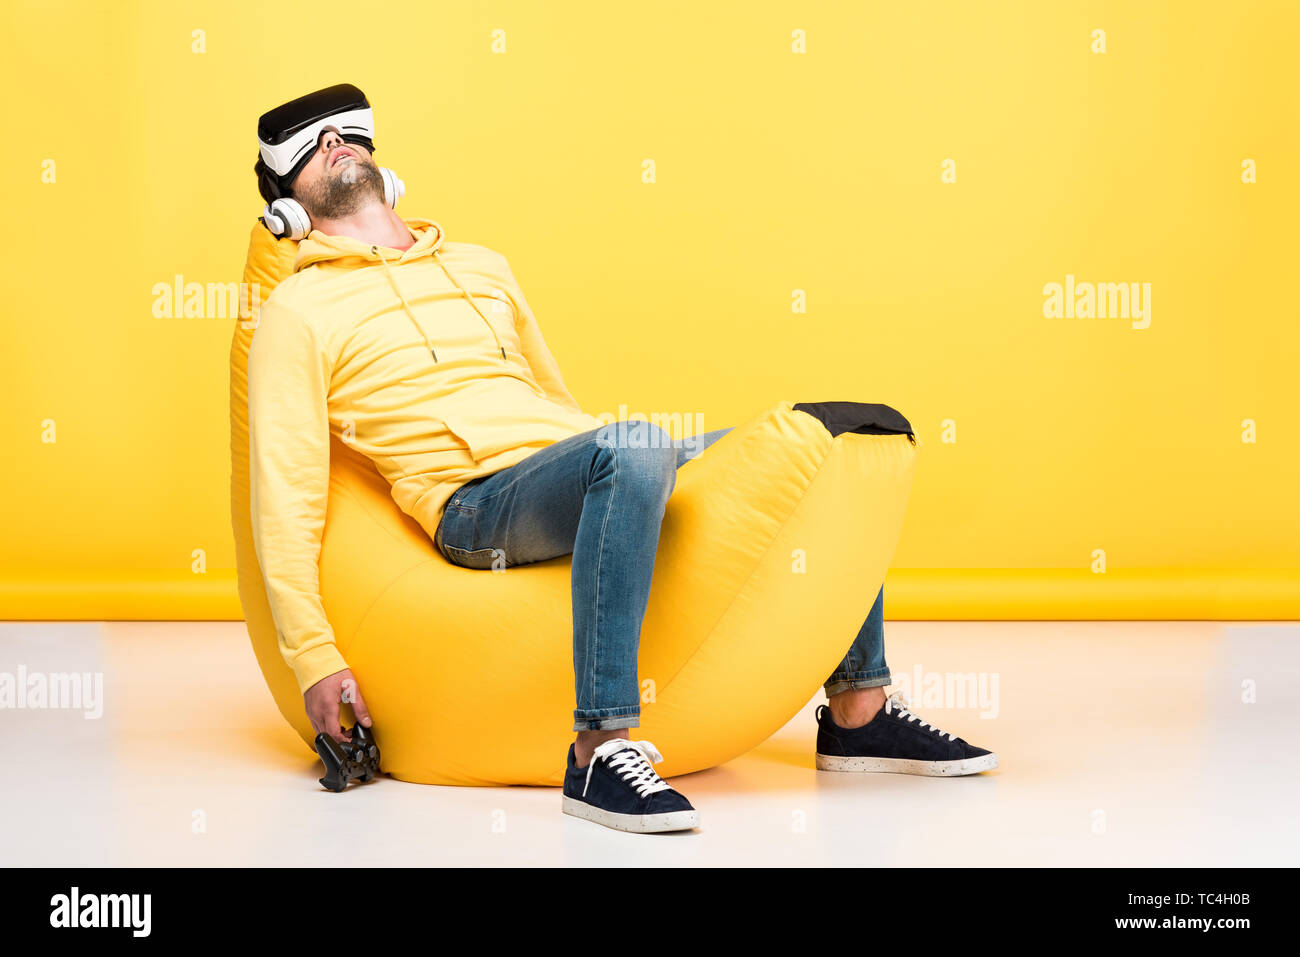 man on bean bag chair with joystick in virtual reality headset on yellow - Stock Image